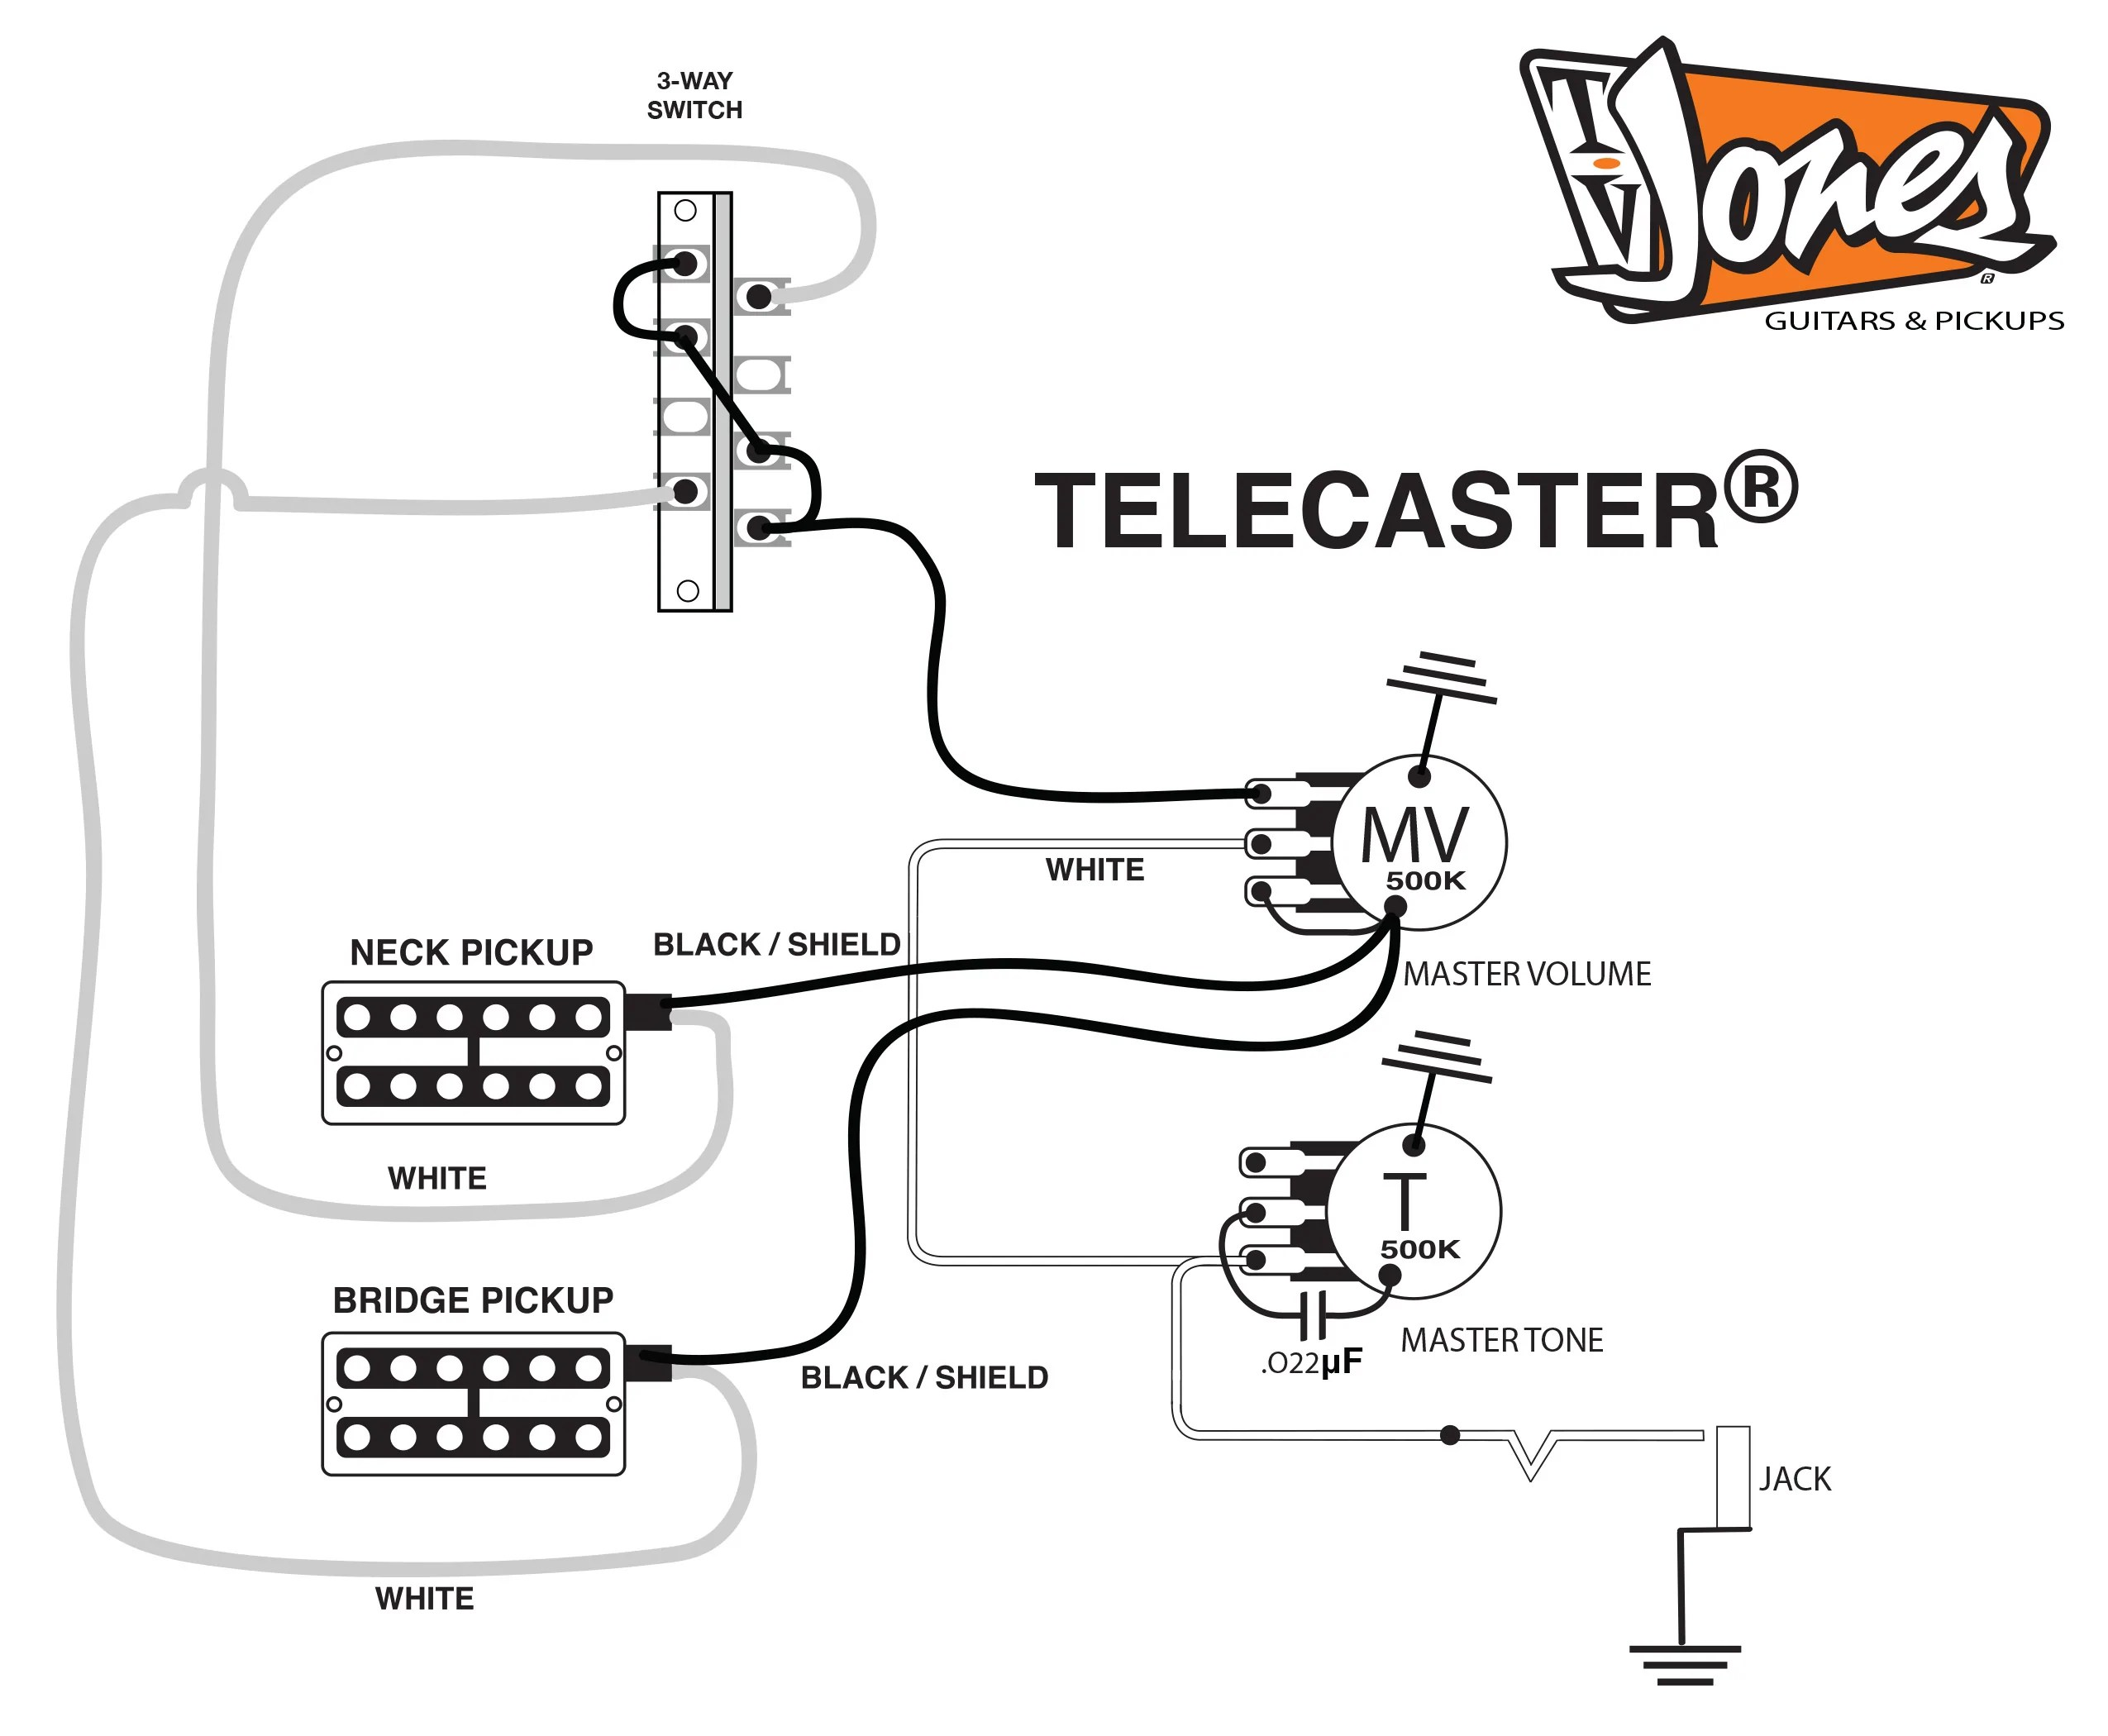 medium resolution of tv jones wiring diagram